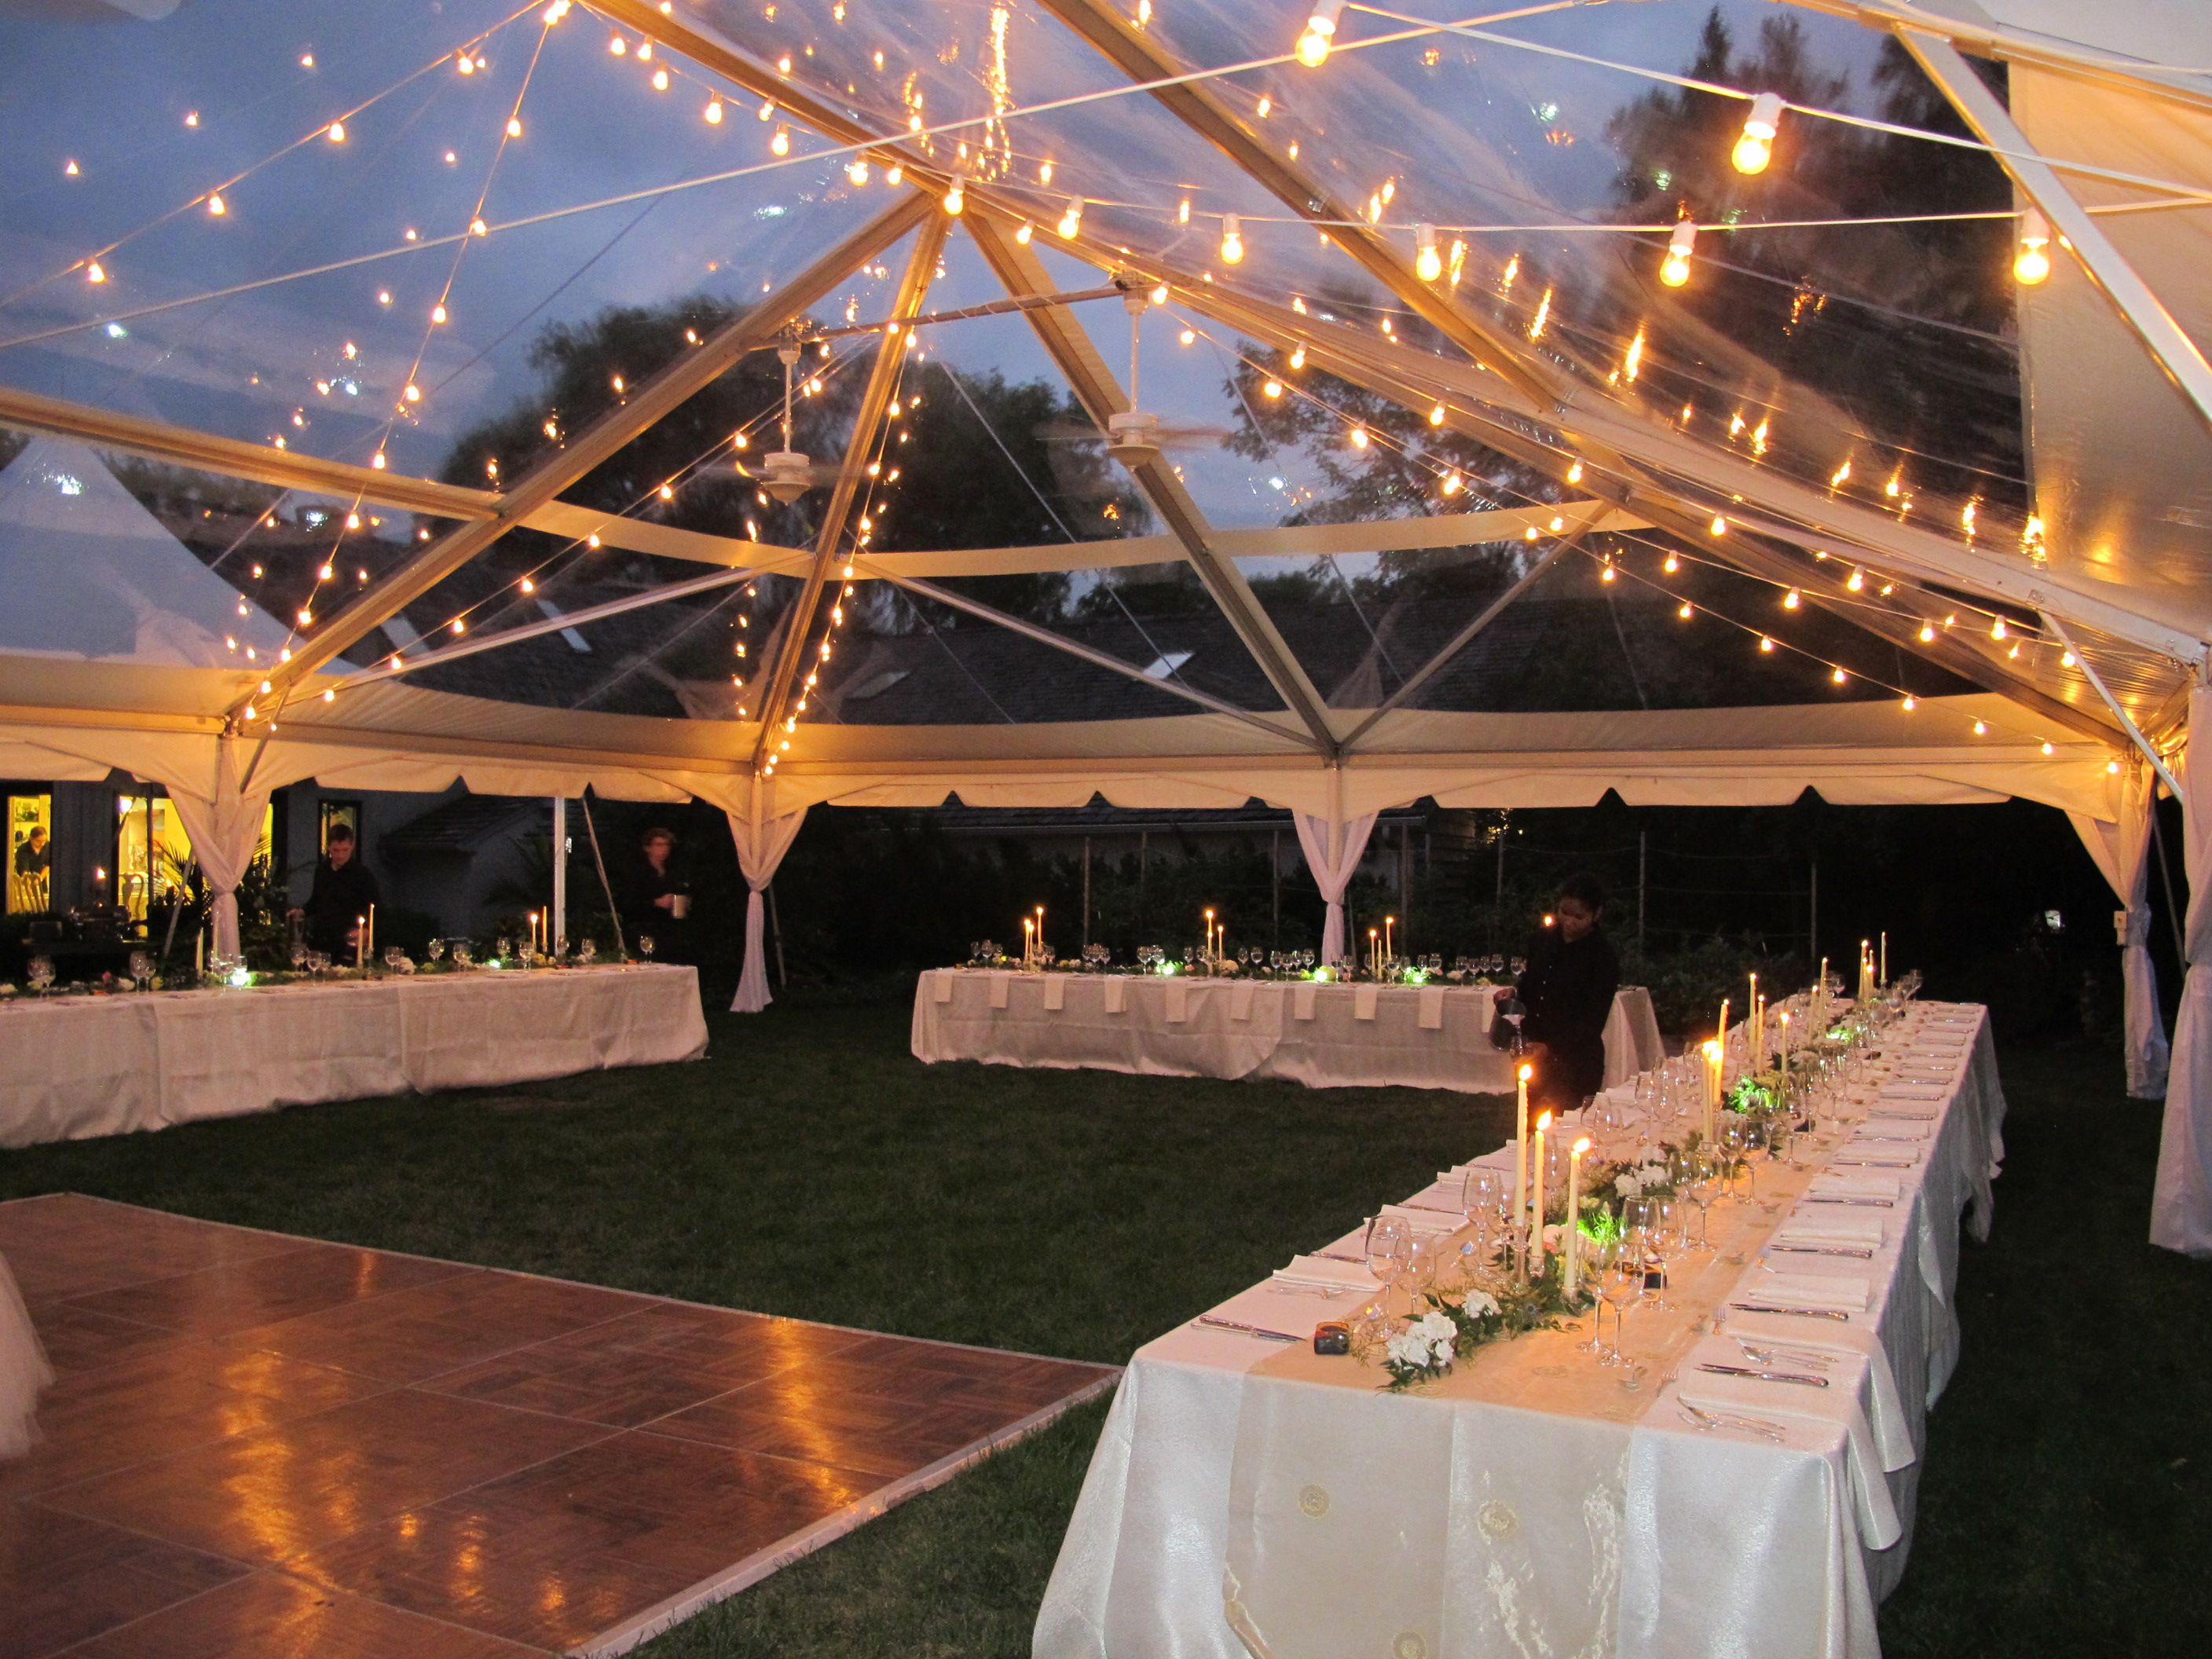 Clear-Top Tents | Official Blue Peak Tents Blog | Tent reception, Clear tent,  Tent wedding reception